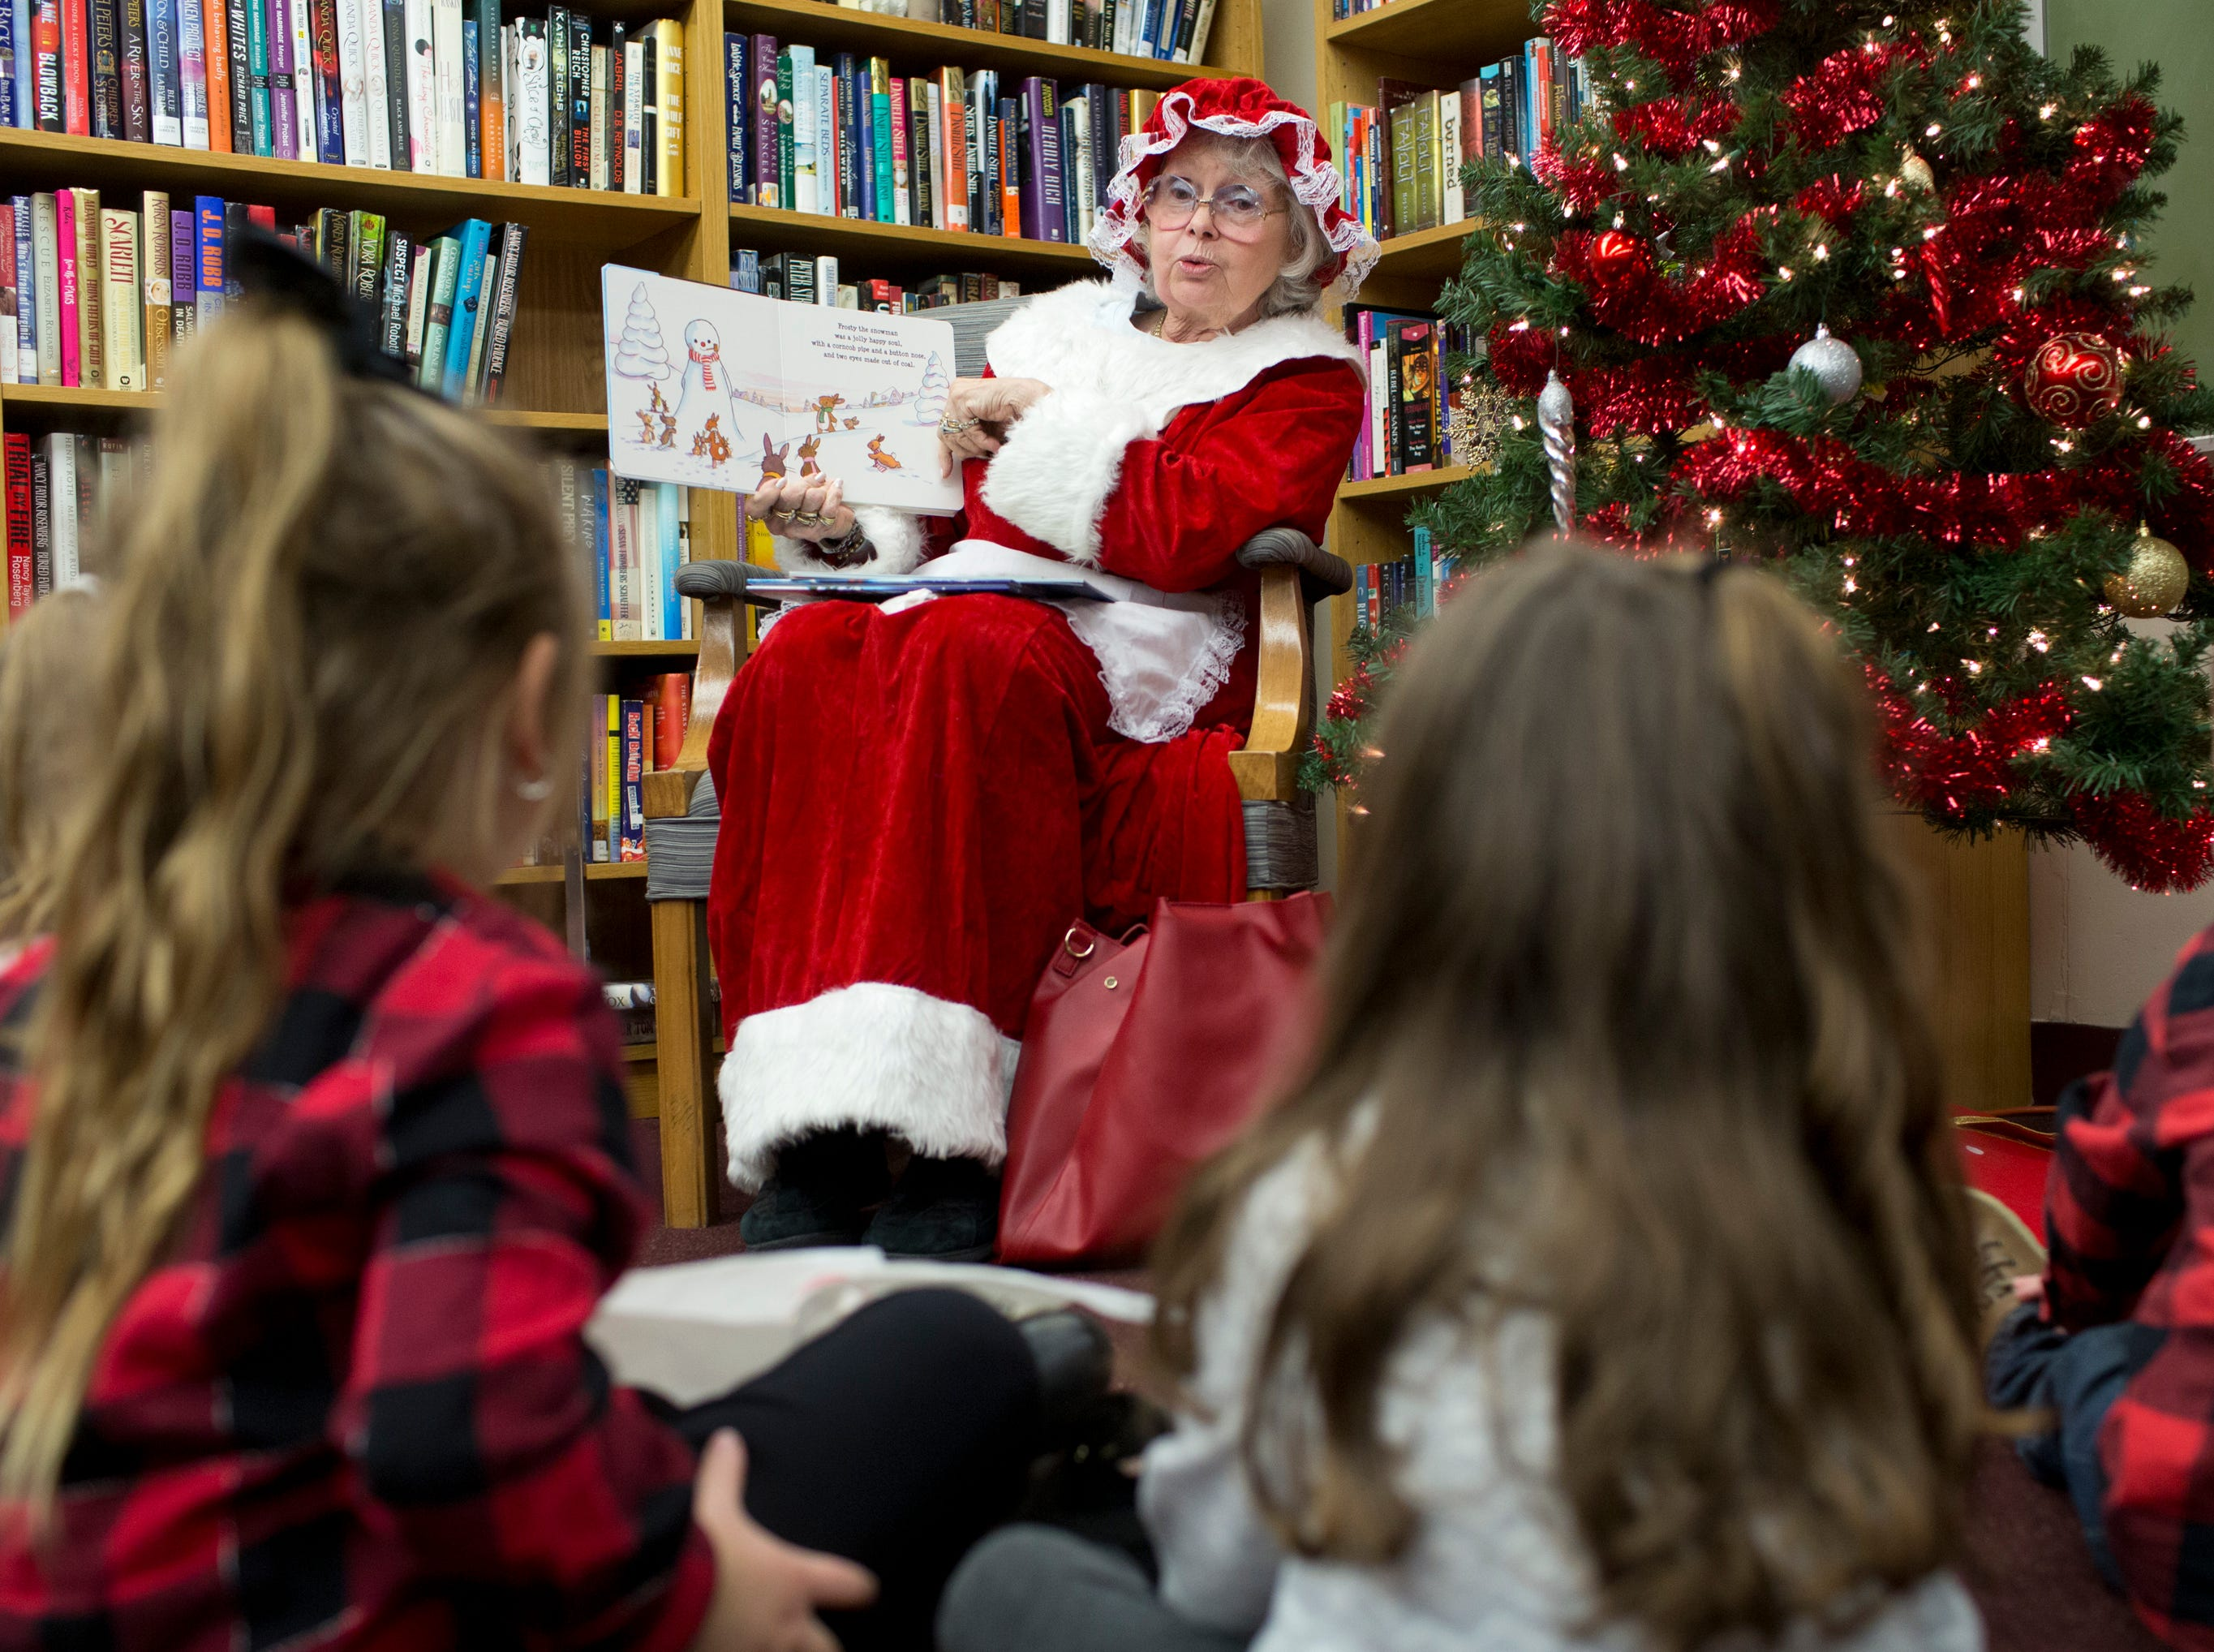 Mrs. Claus reads children books at Louis Bay 2nd Library after the 33rd Annual Santa Parade in Hawthorne on Saturday, Dec. 1, 2018.